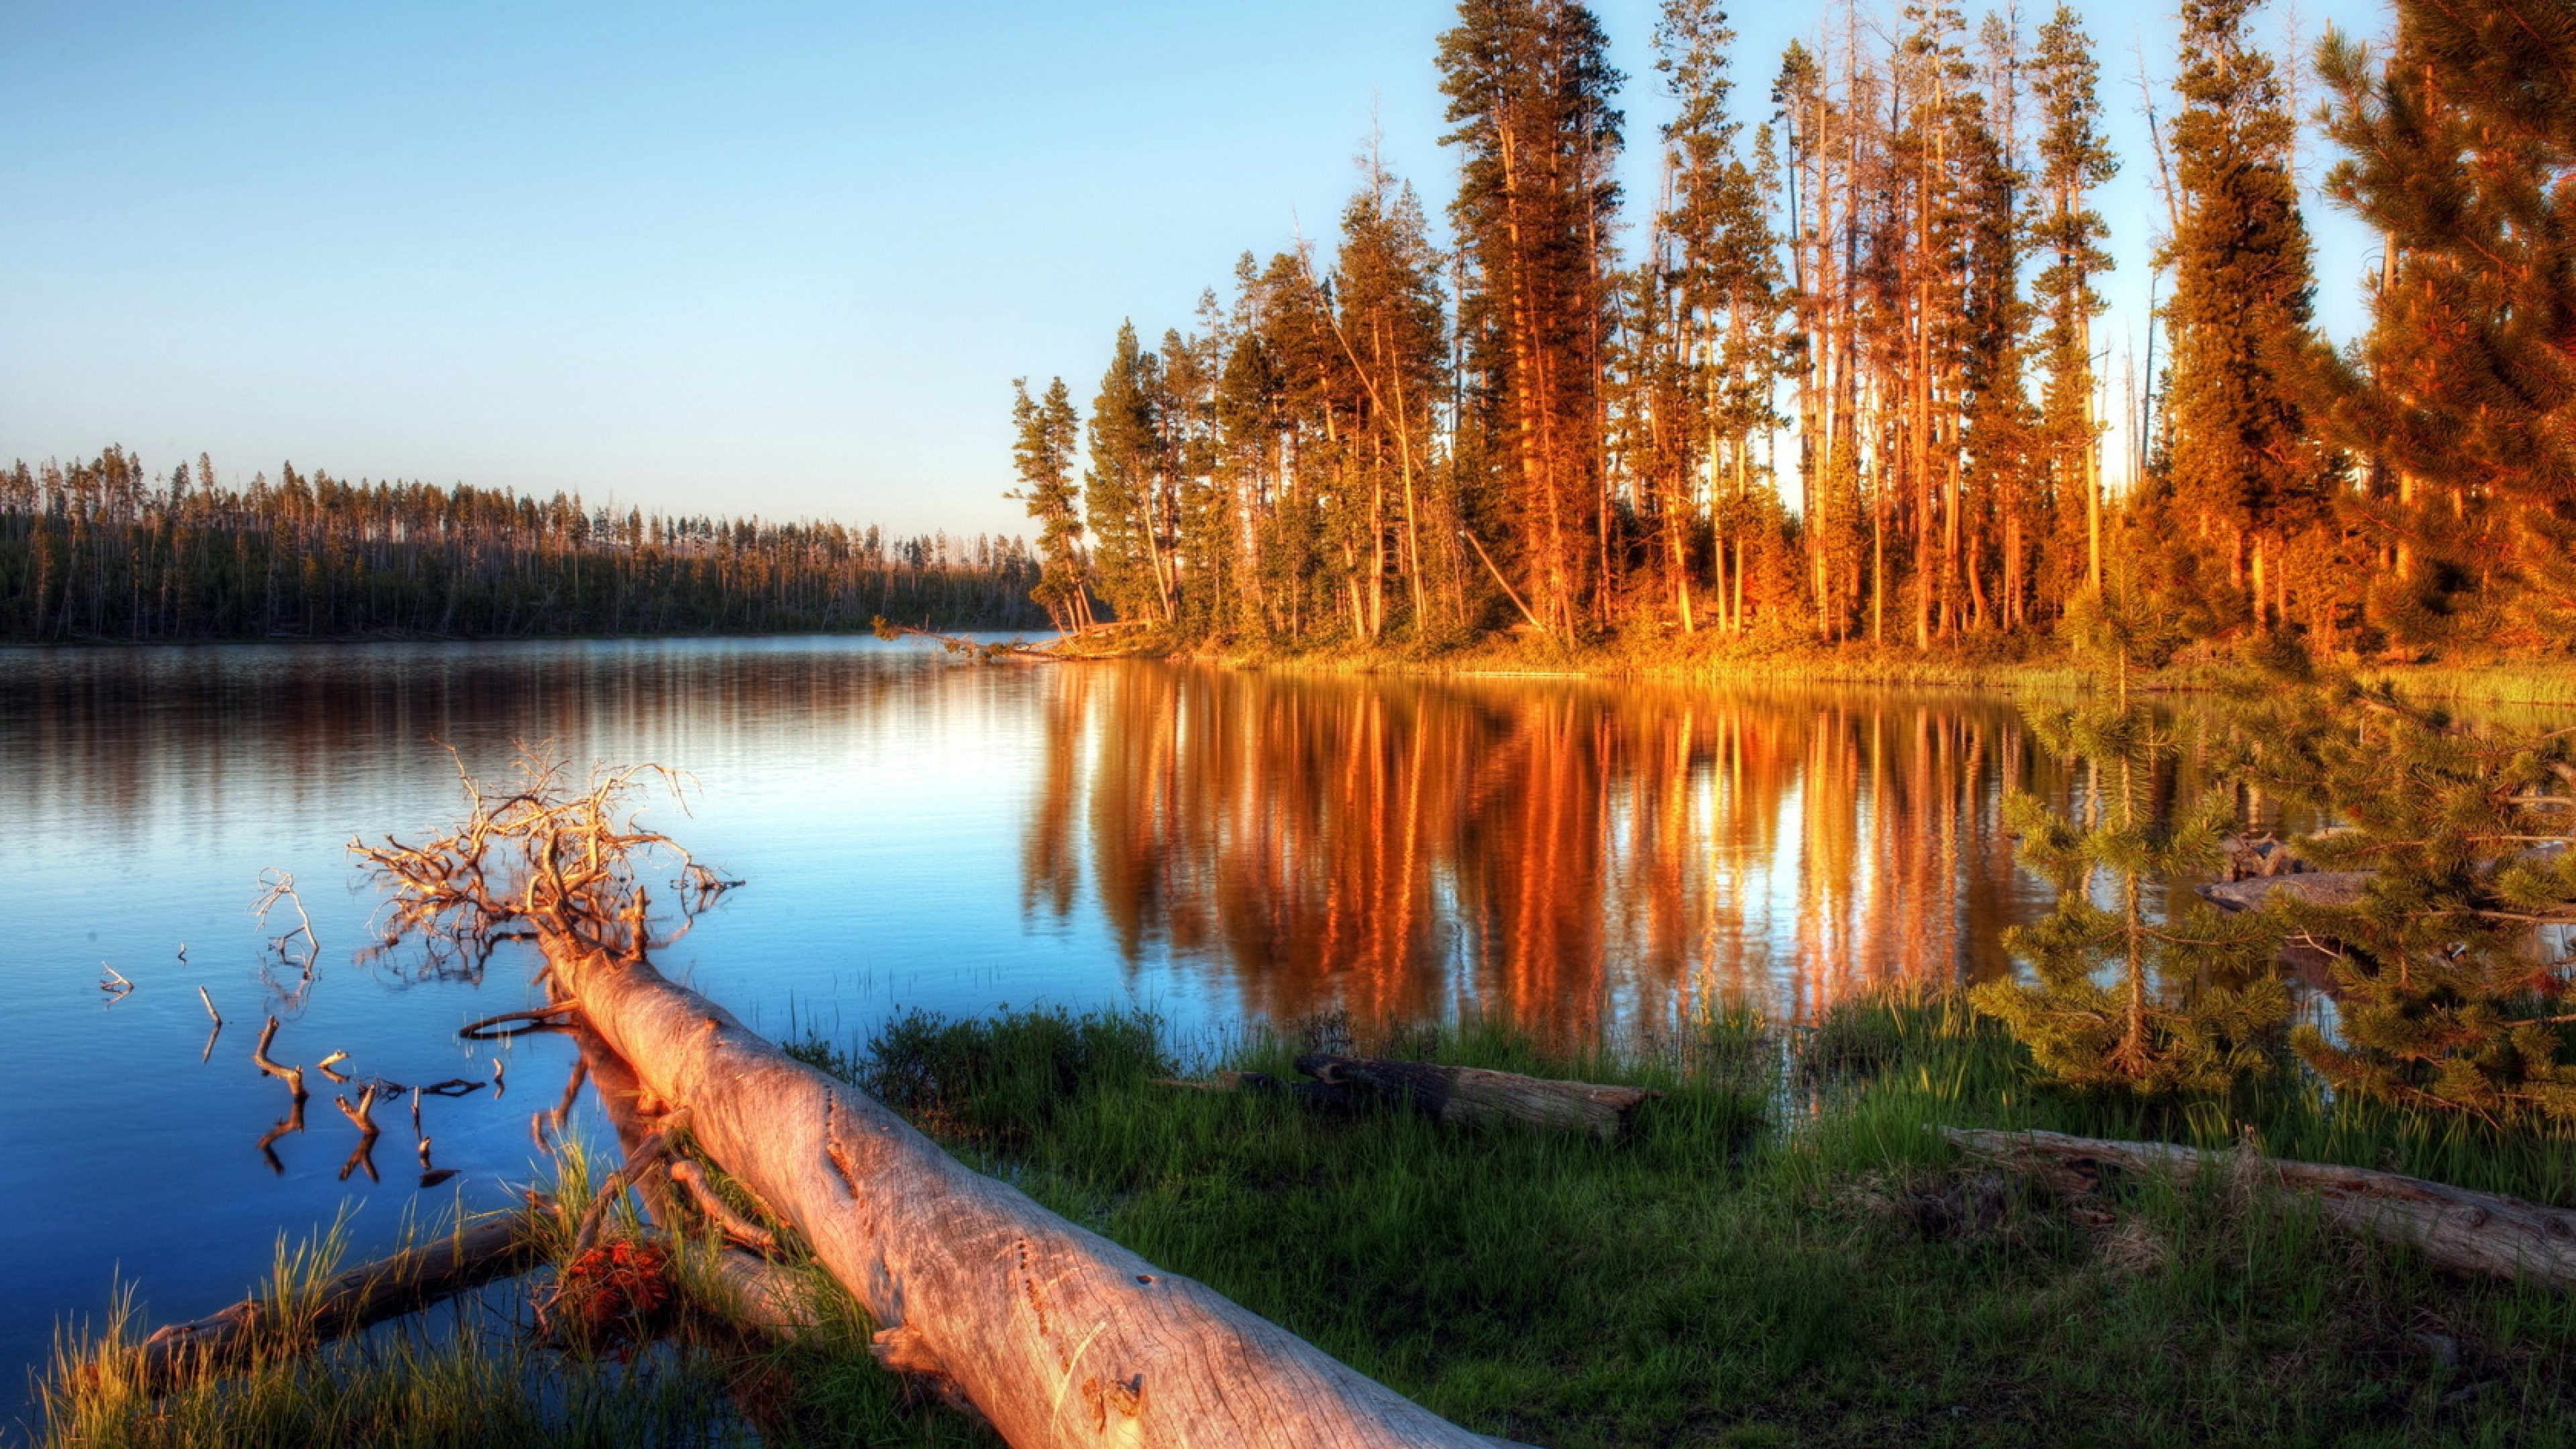 Lake Evening Trees Log Water Light Wallpaper Background 4K Ultra 3840x2160